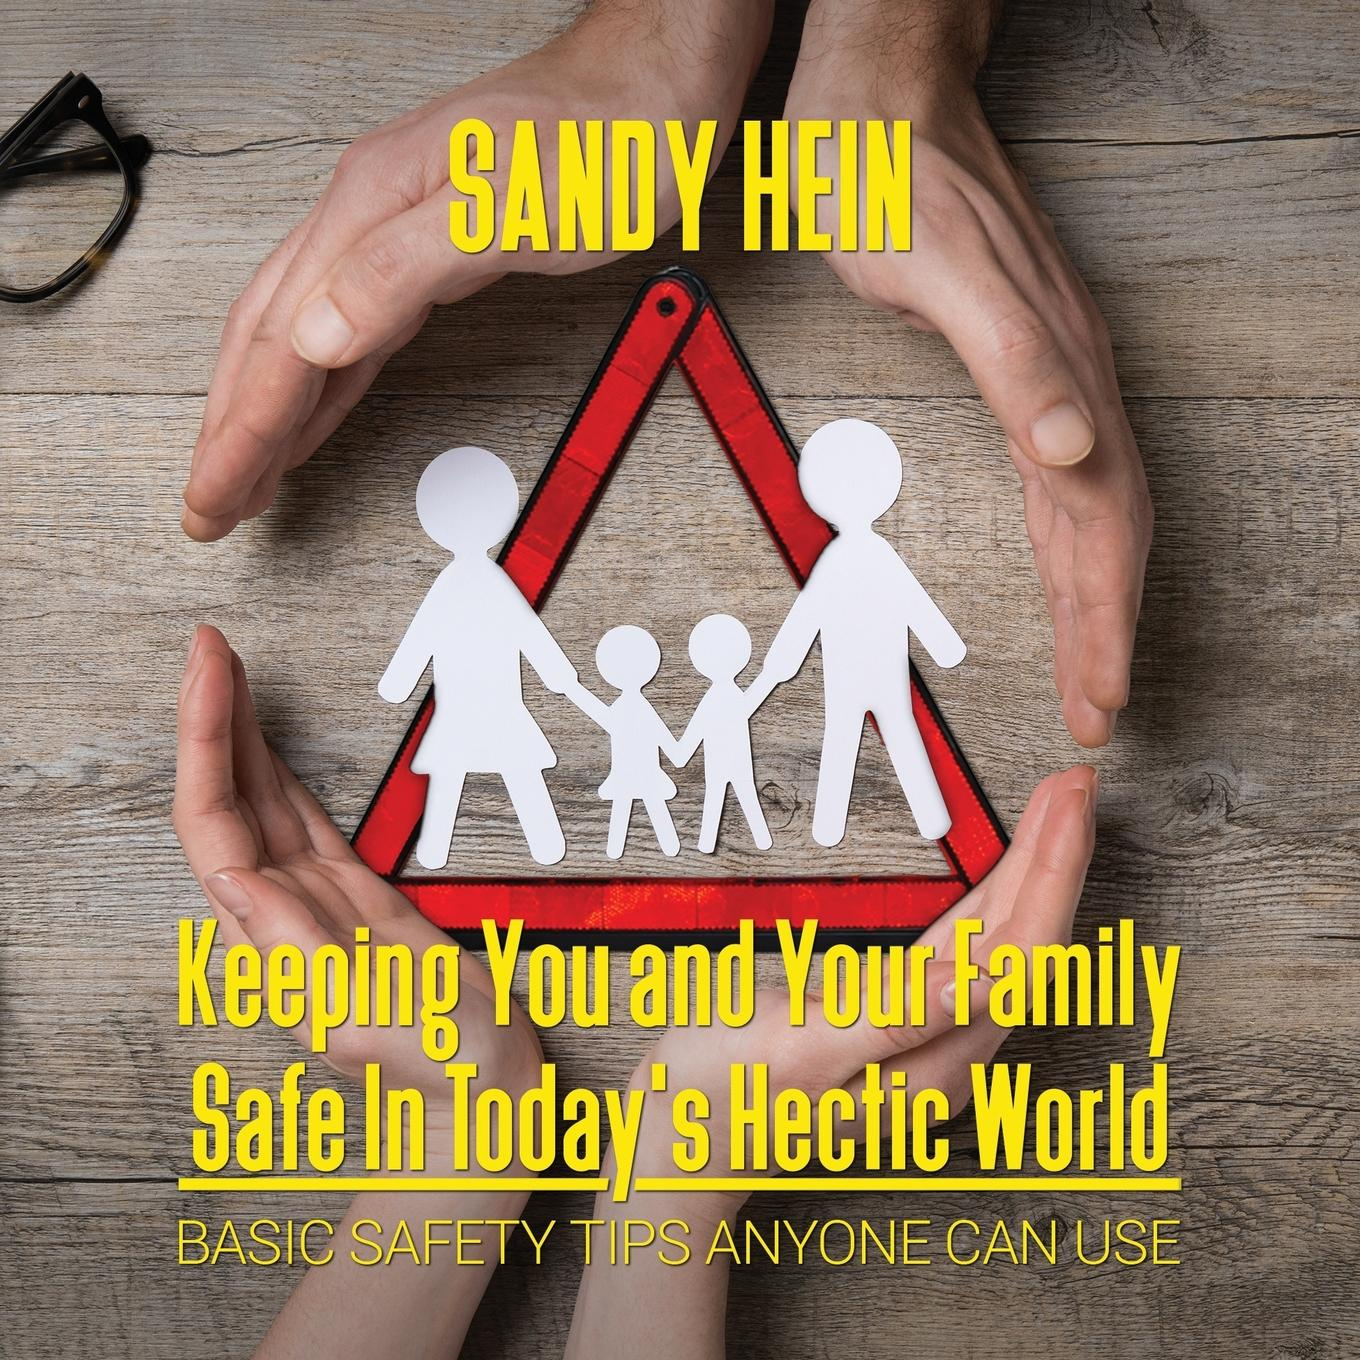 Keeping You and Your Family Safe in Today's Hectic World: Basic Safety Tips Anyone Can Use (Paperback)